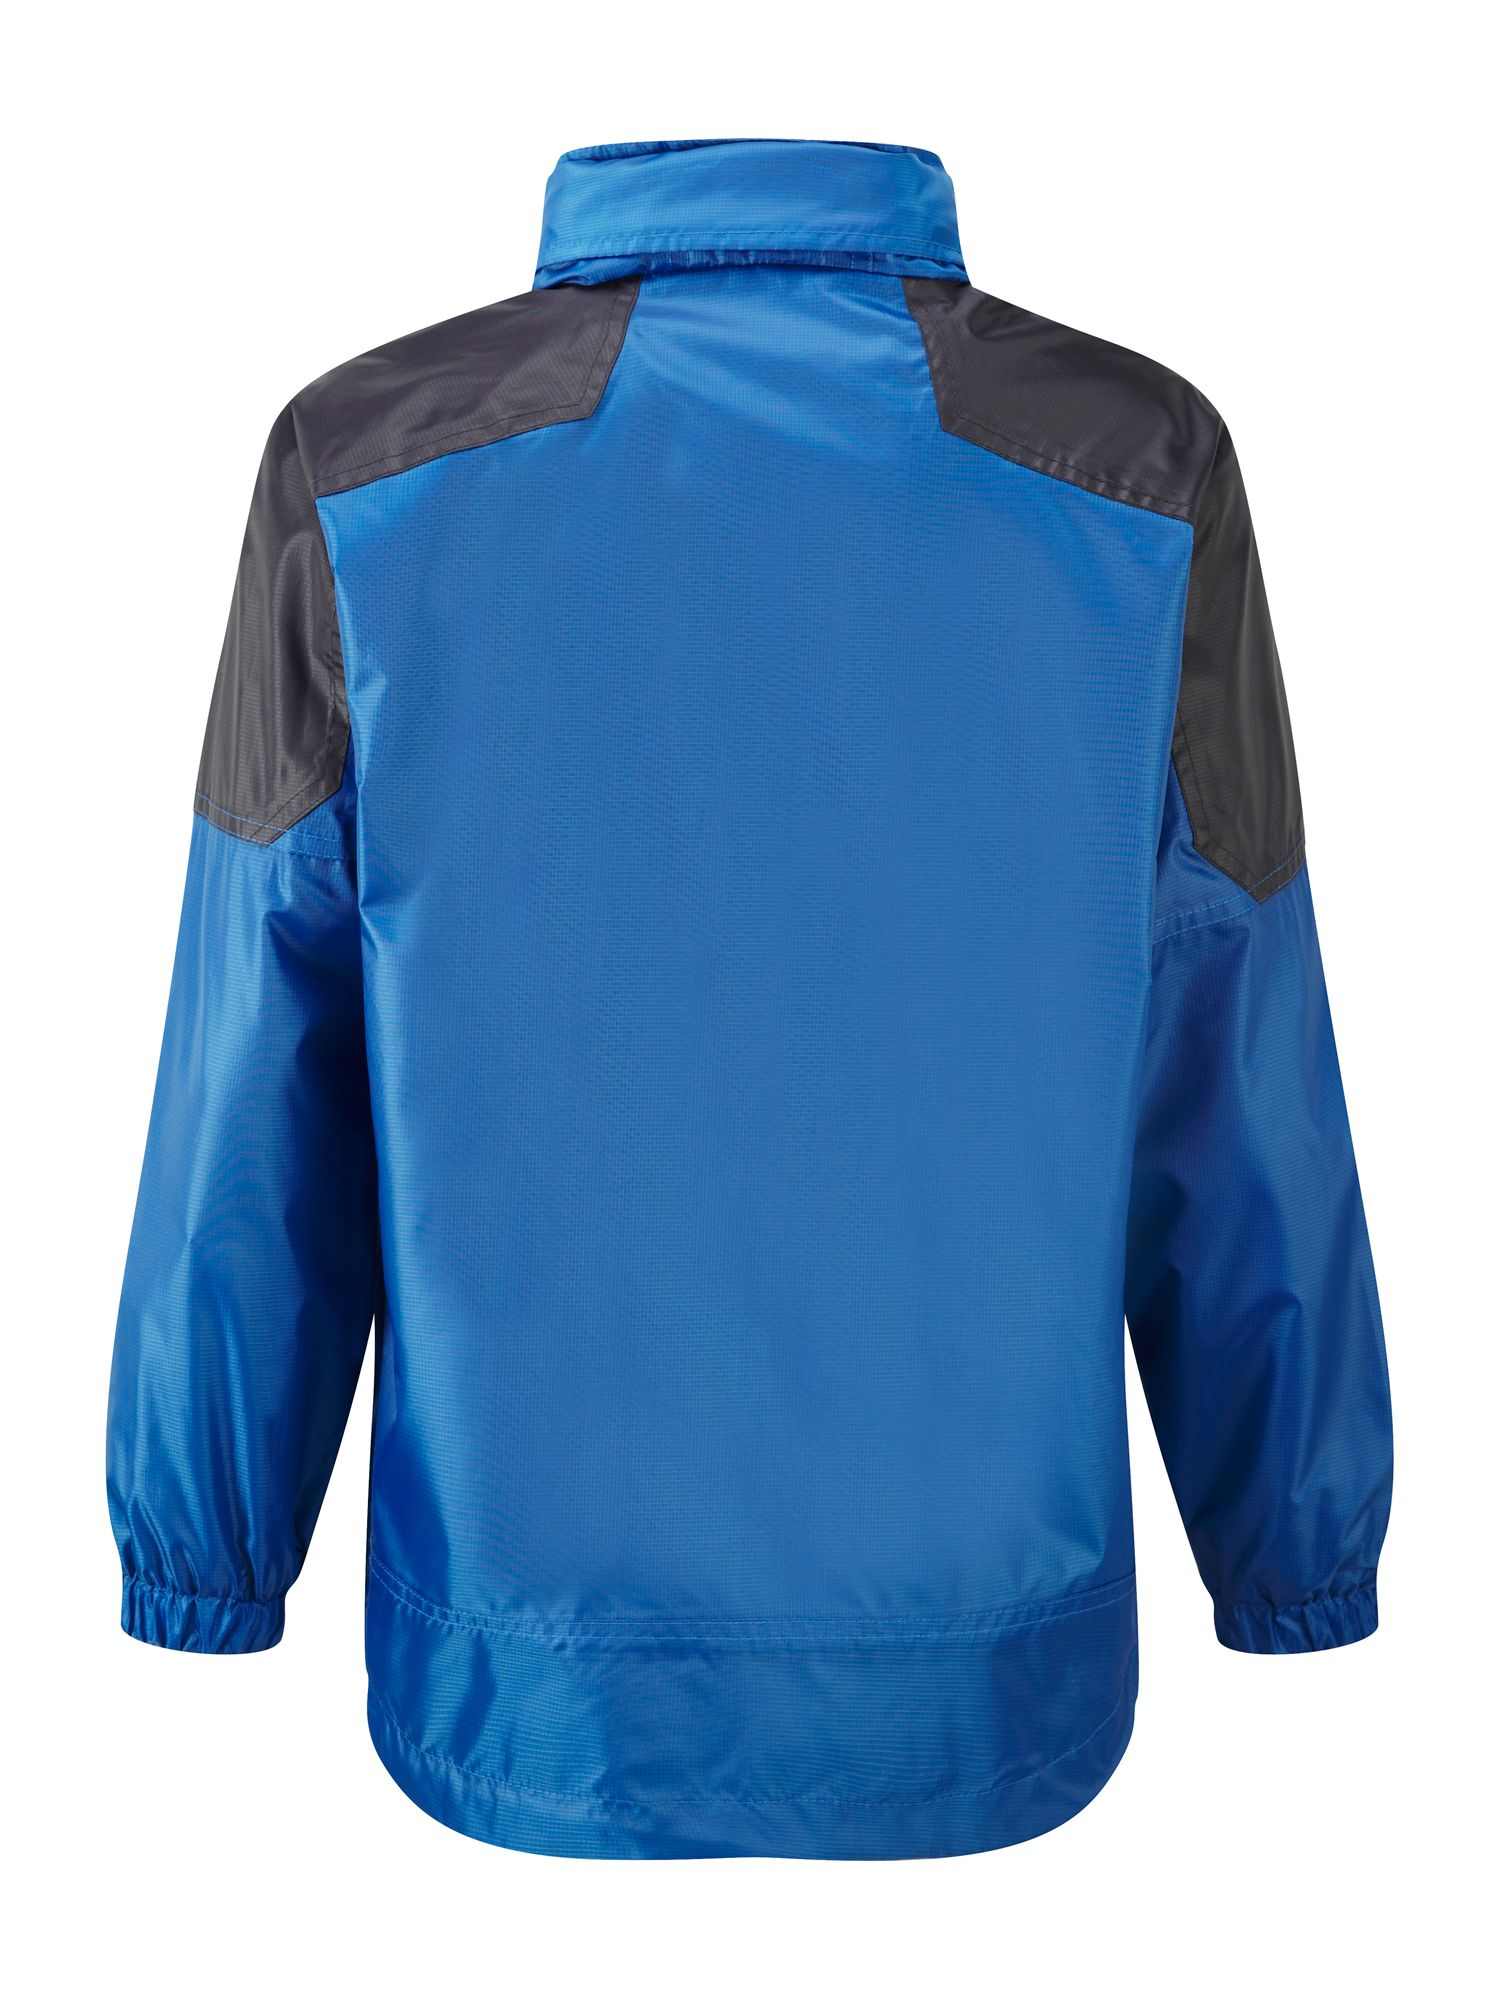 Kids vision milatex jacket